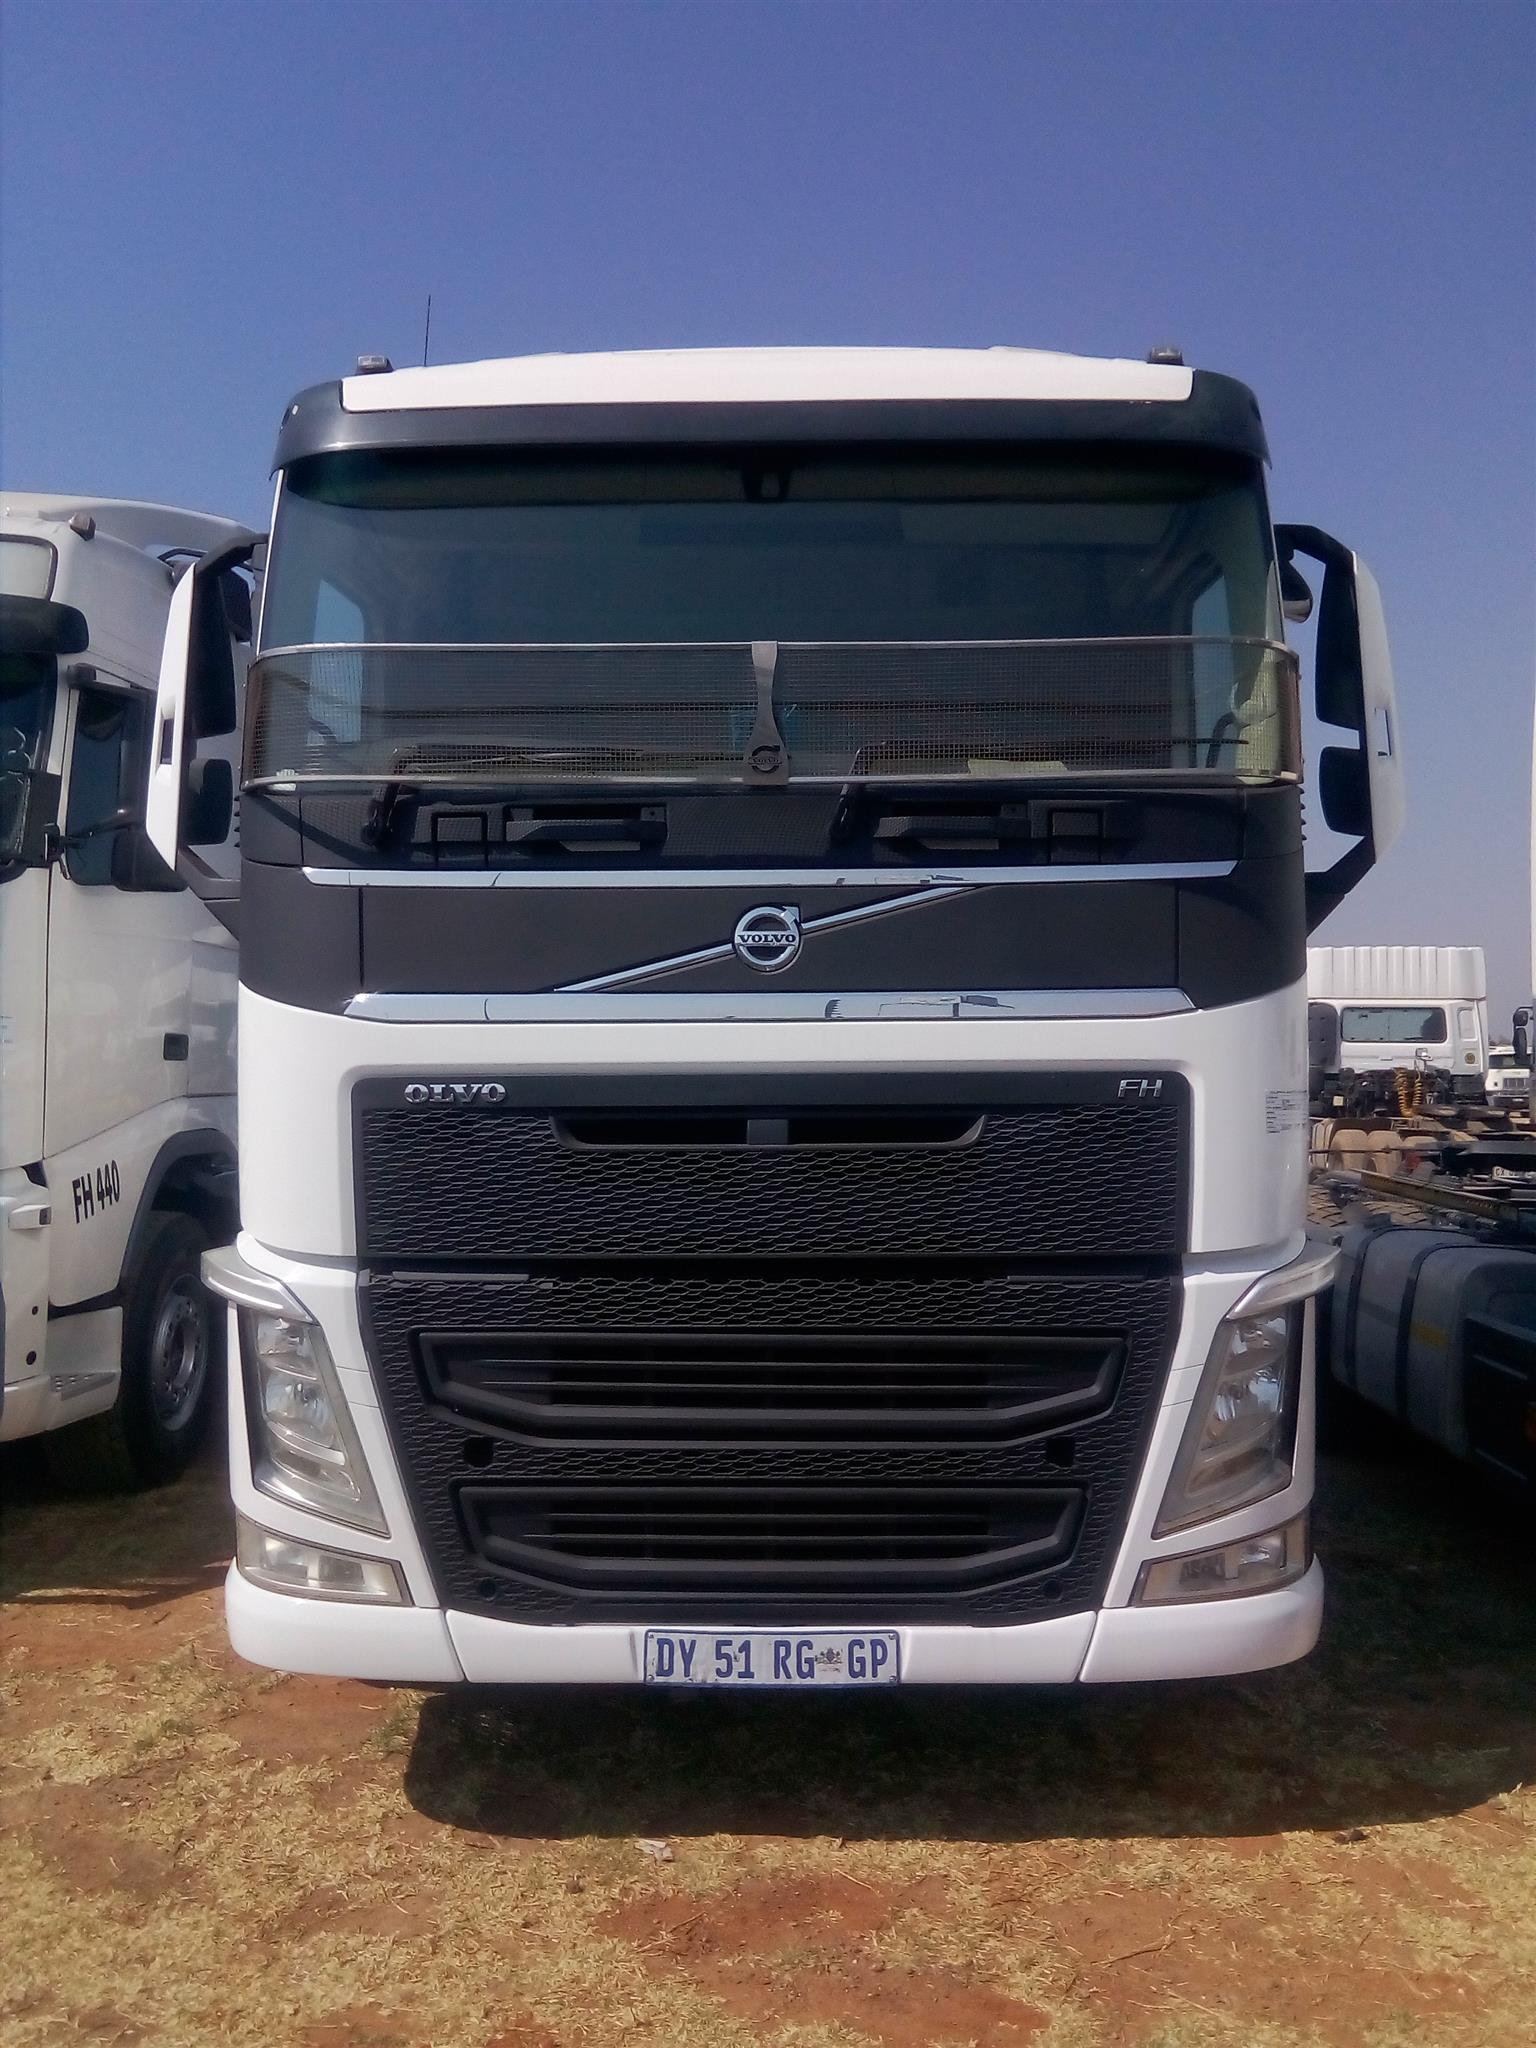 LOWEST PRICES ON TRUCKS AND TRAILERS